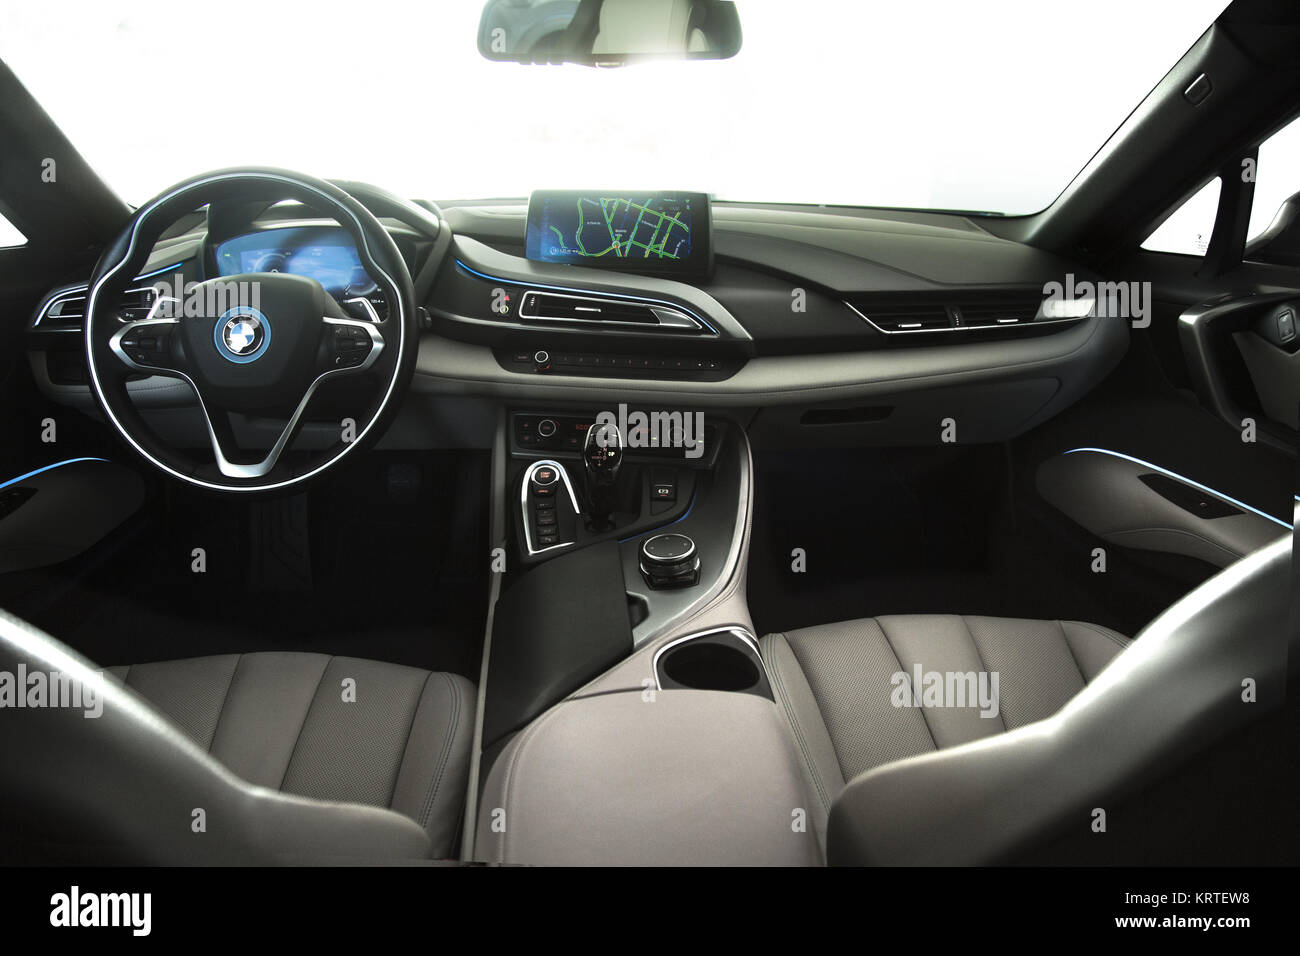 Bmw I8 Coupe Blue Black Exterior Interior Stock Photo 169568932